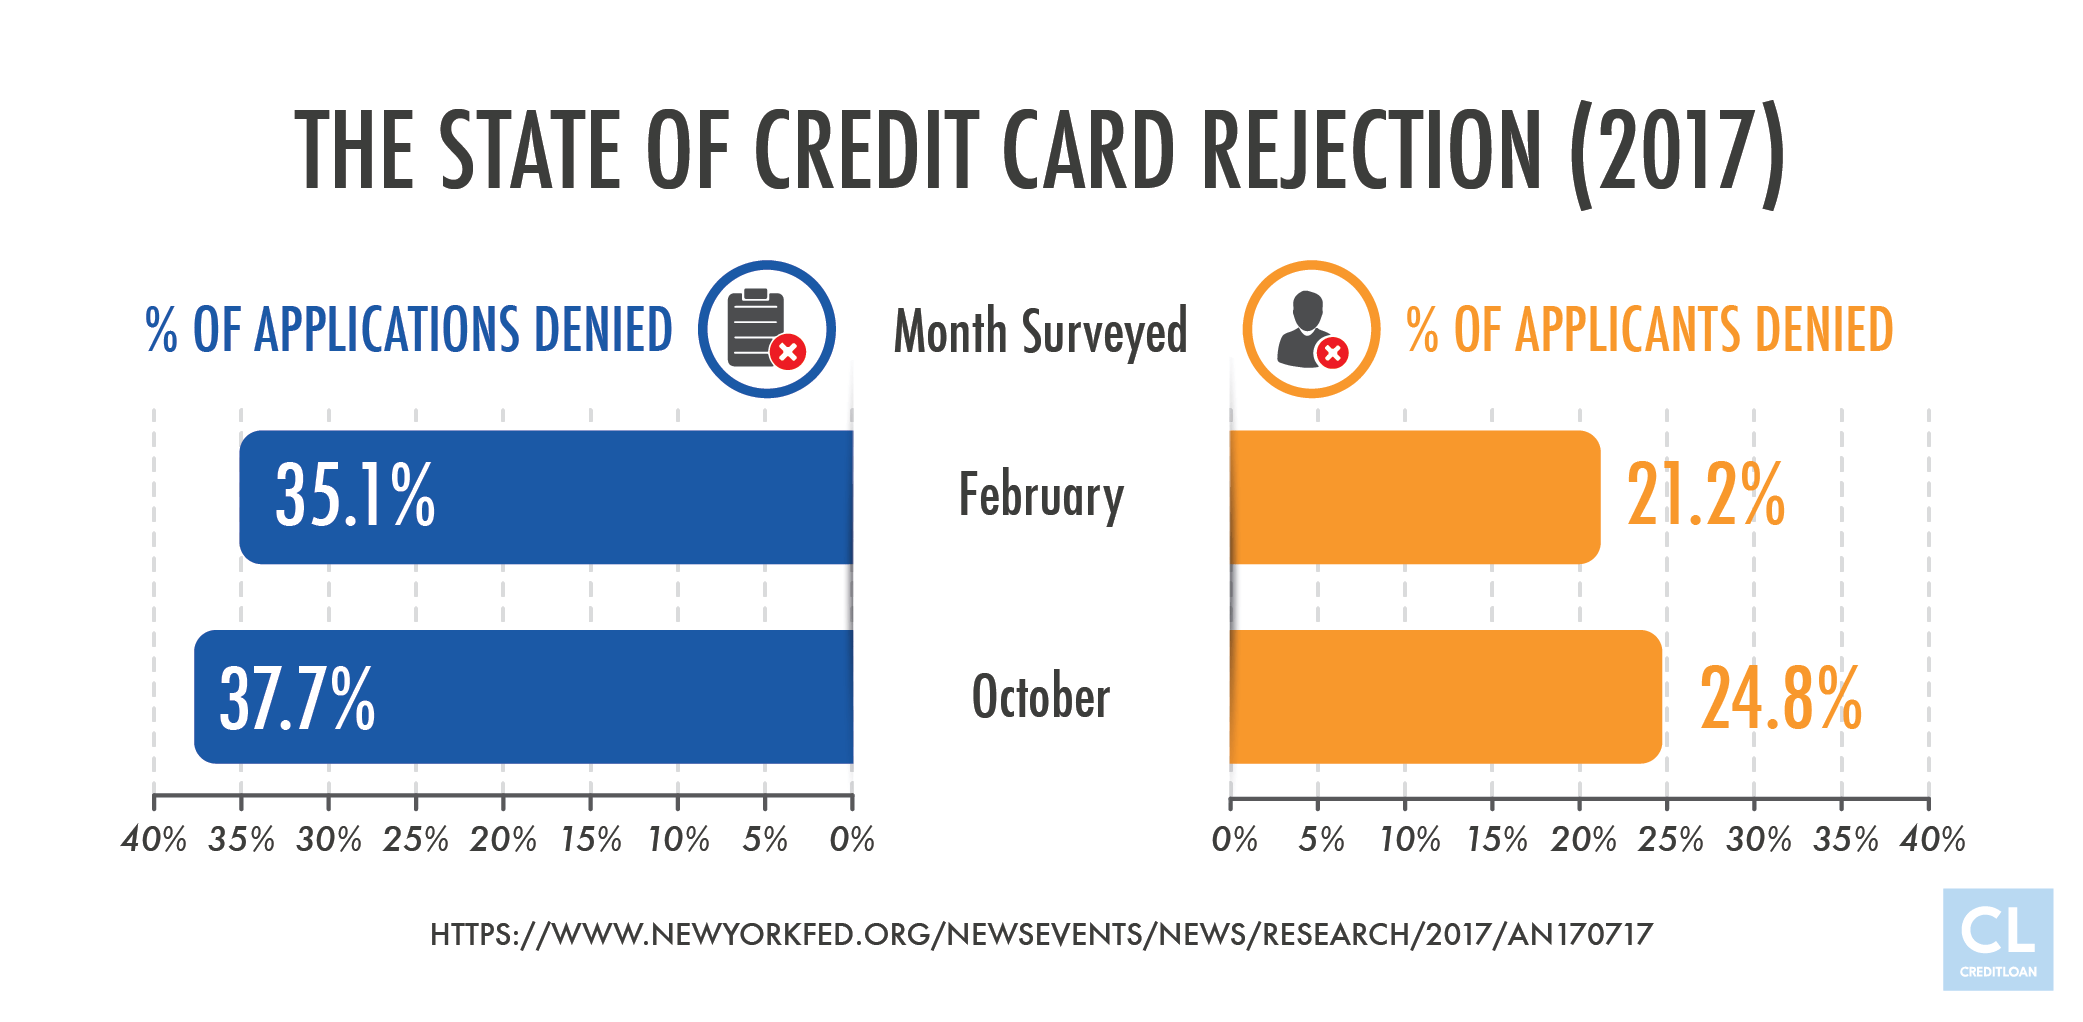 The State of Credit Card Rejection (2017)